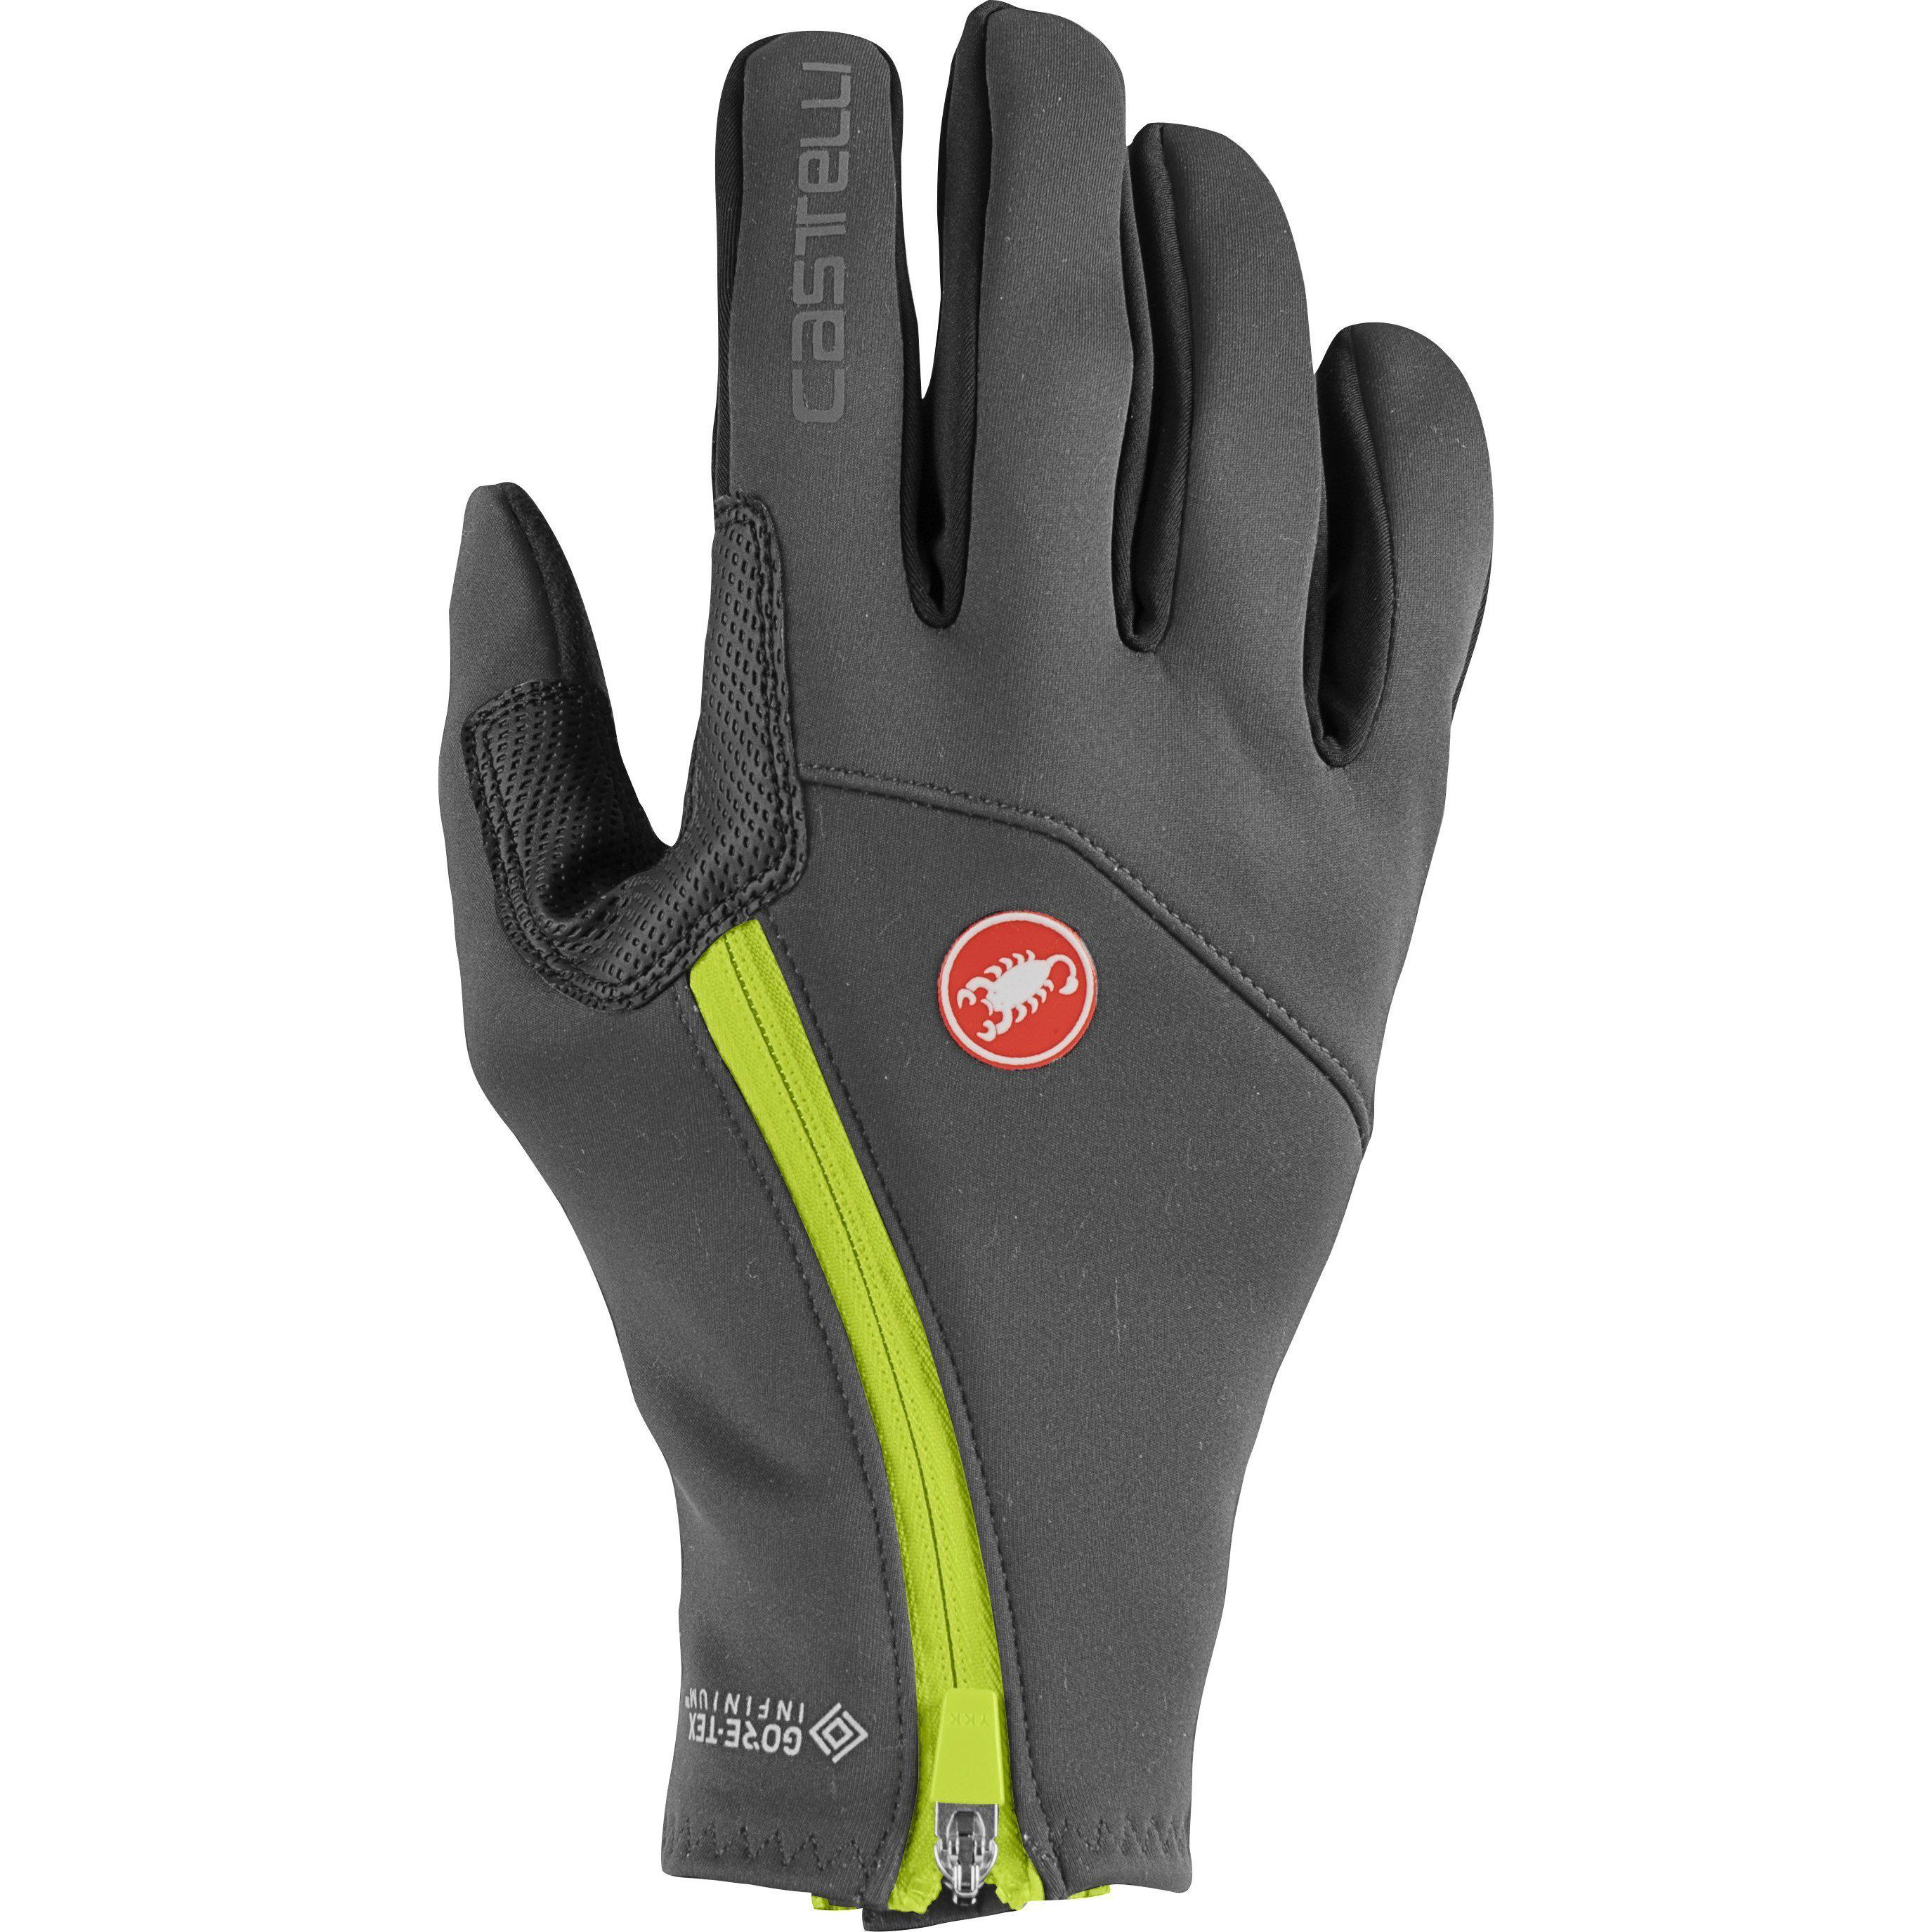 Castelli-Castelli Mortirolo Gloves-Dark Gray-XS-CS205330301-saddleback-elite-performance-cycling